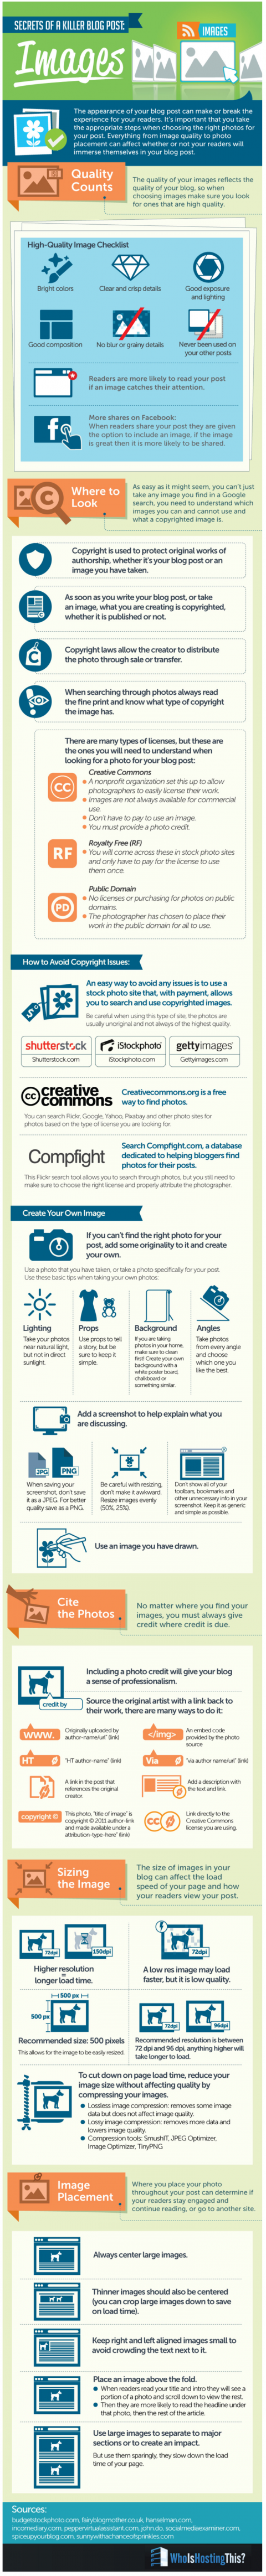 Infographic – Secrets of a Killer Blog Post: Images